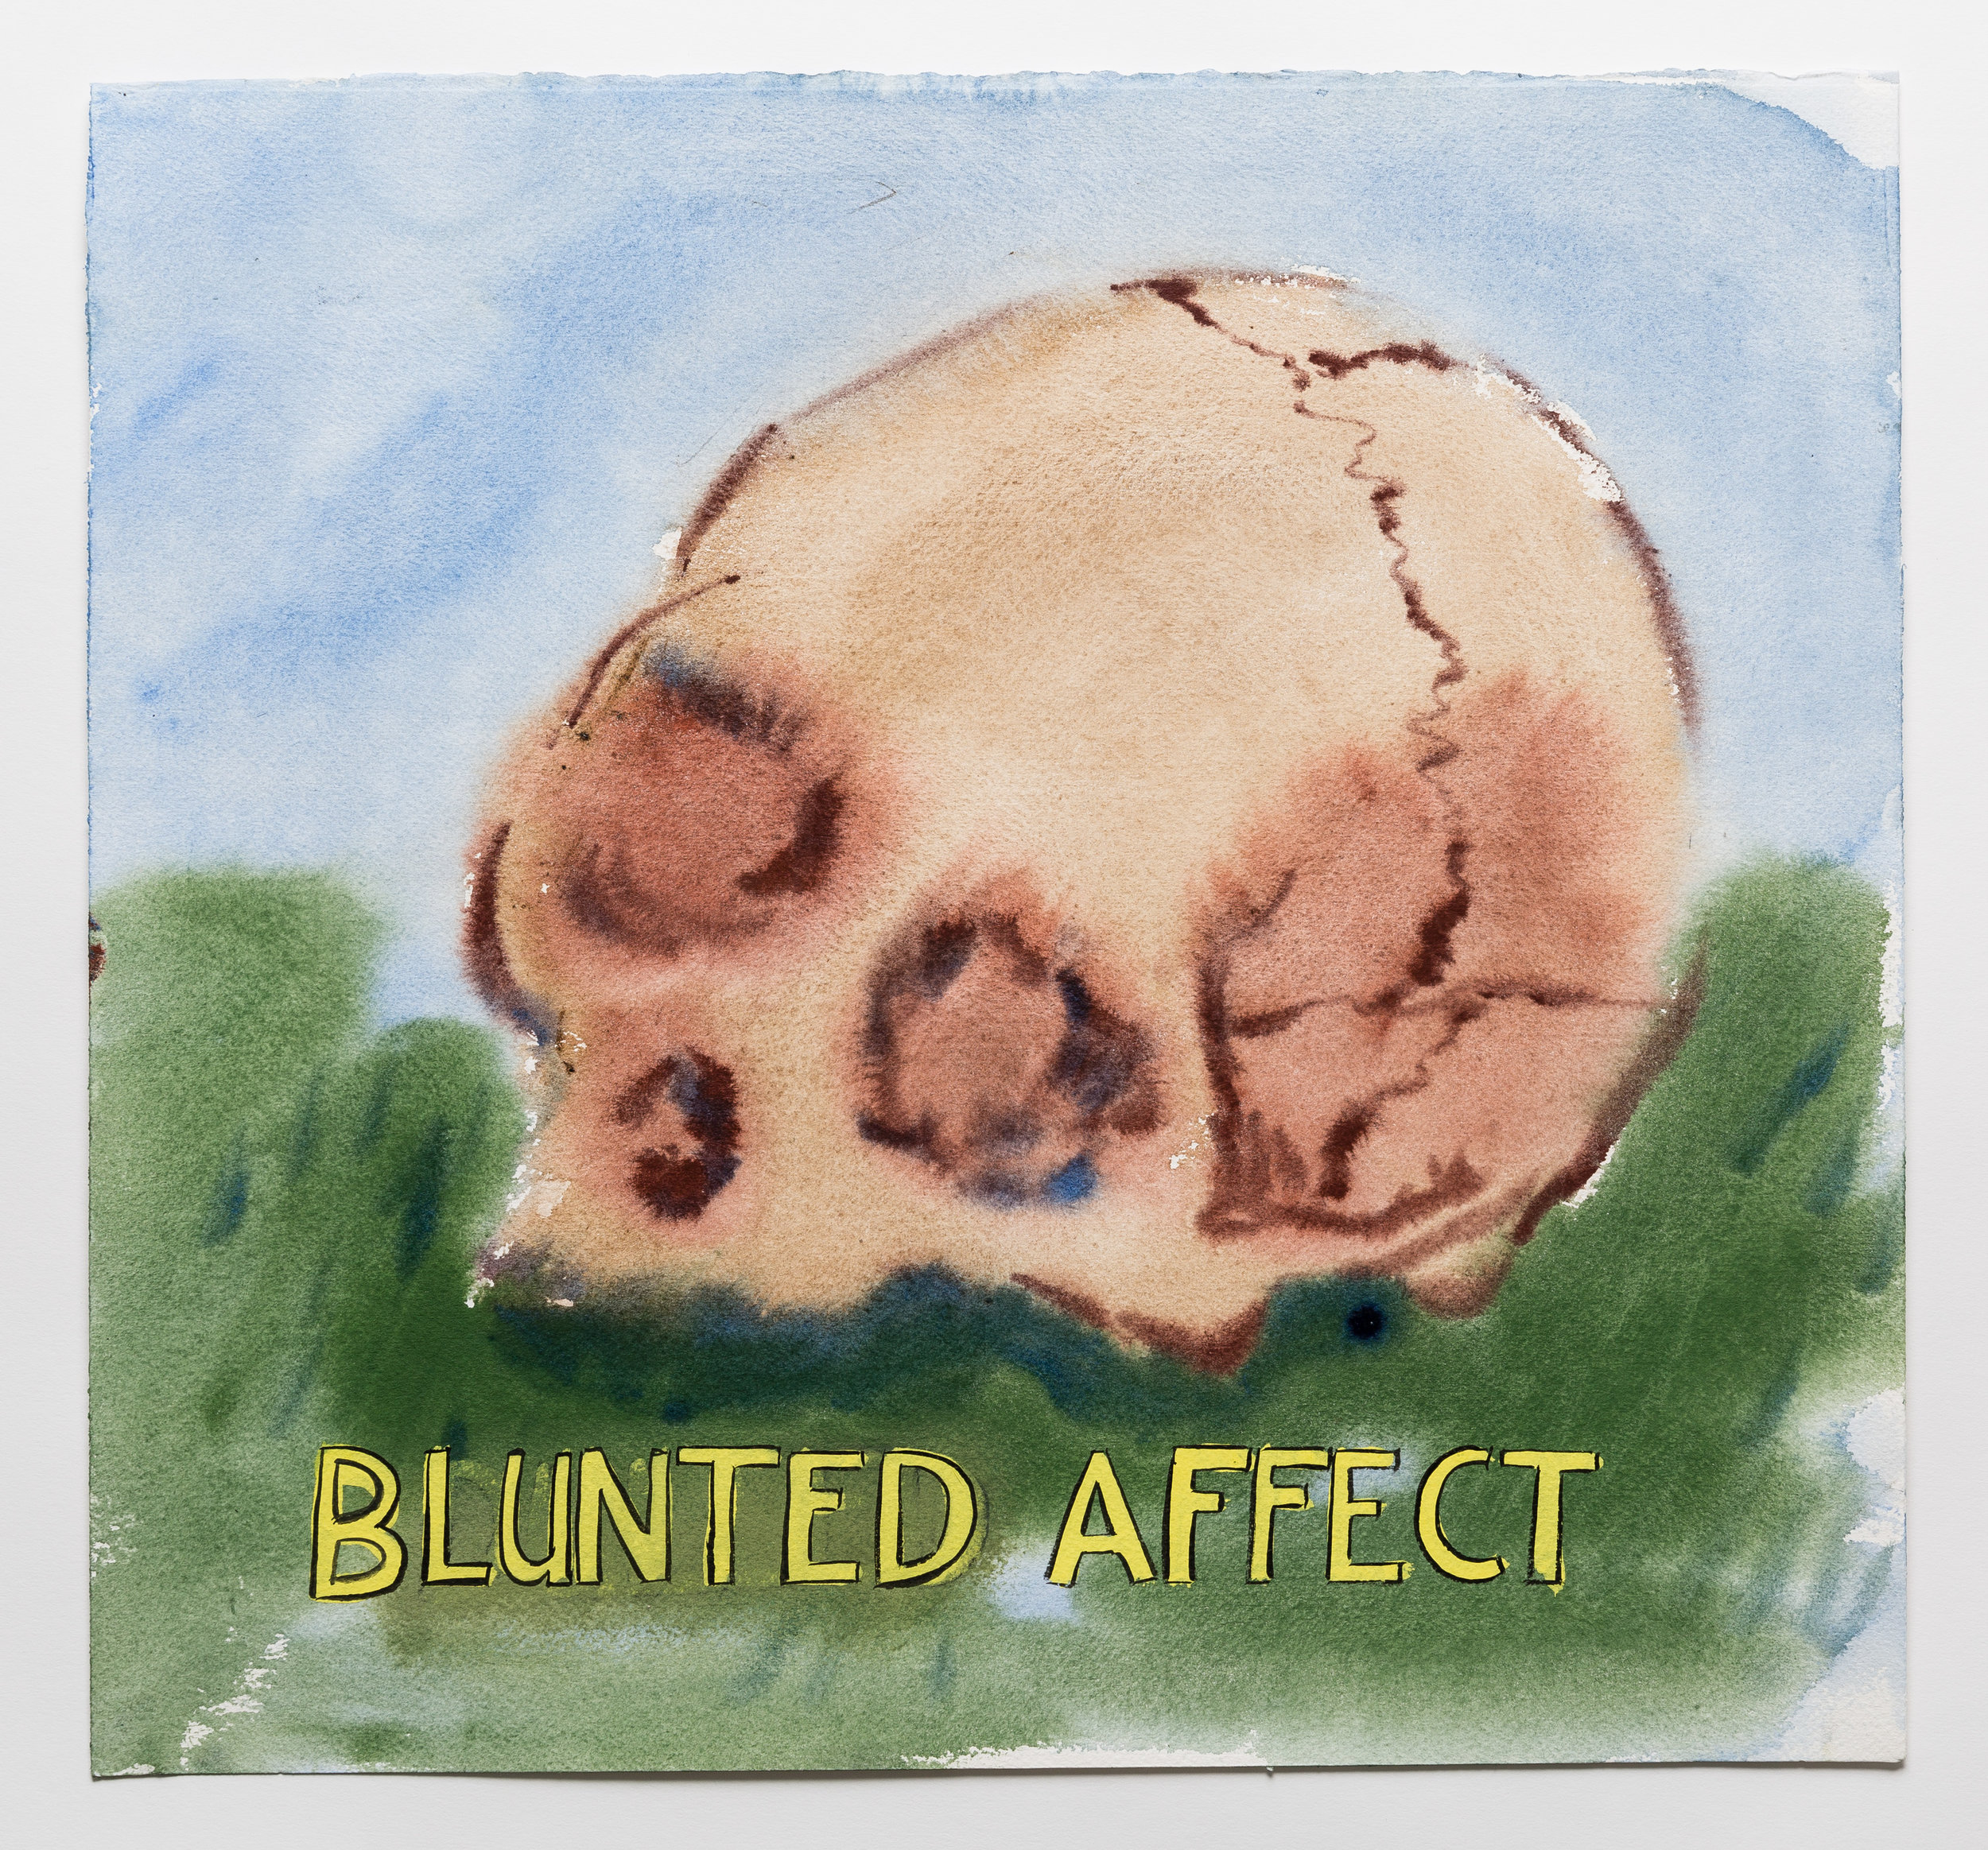 Blunted Affect    2015 Watercolor, gouache and ink on paper 15x16""